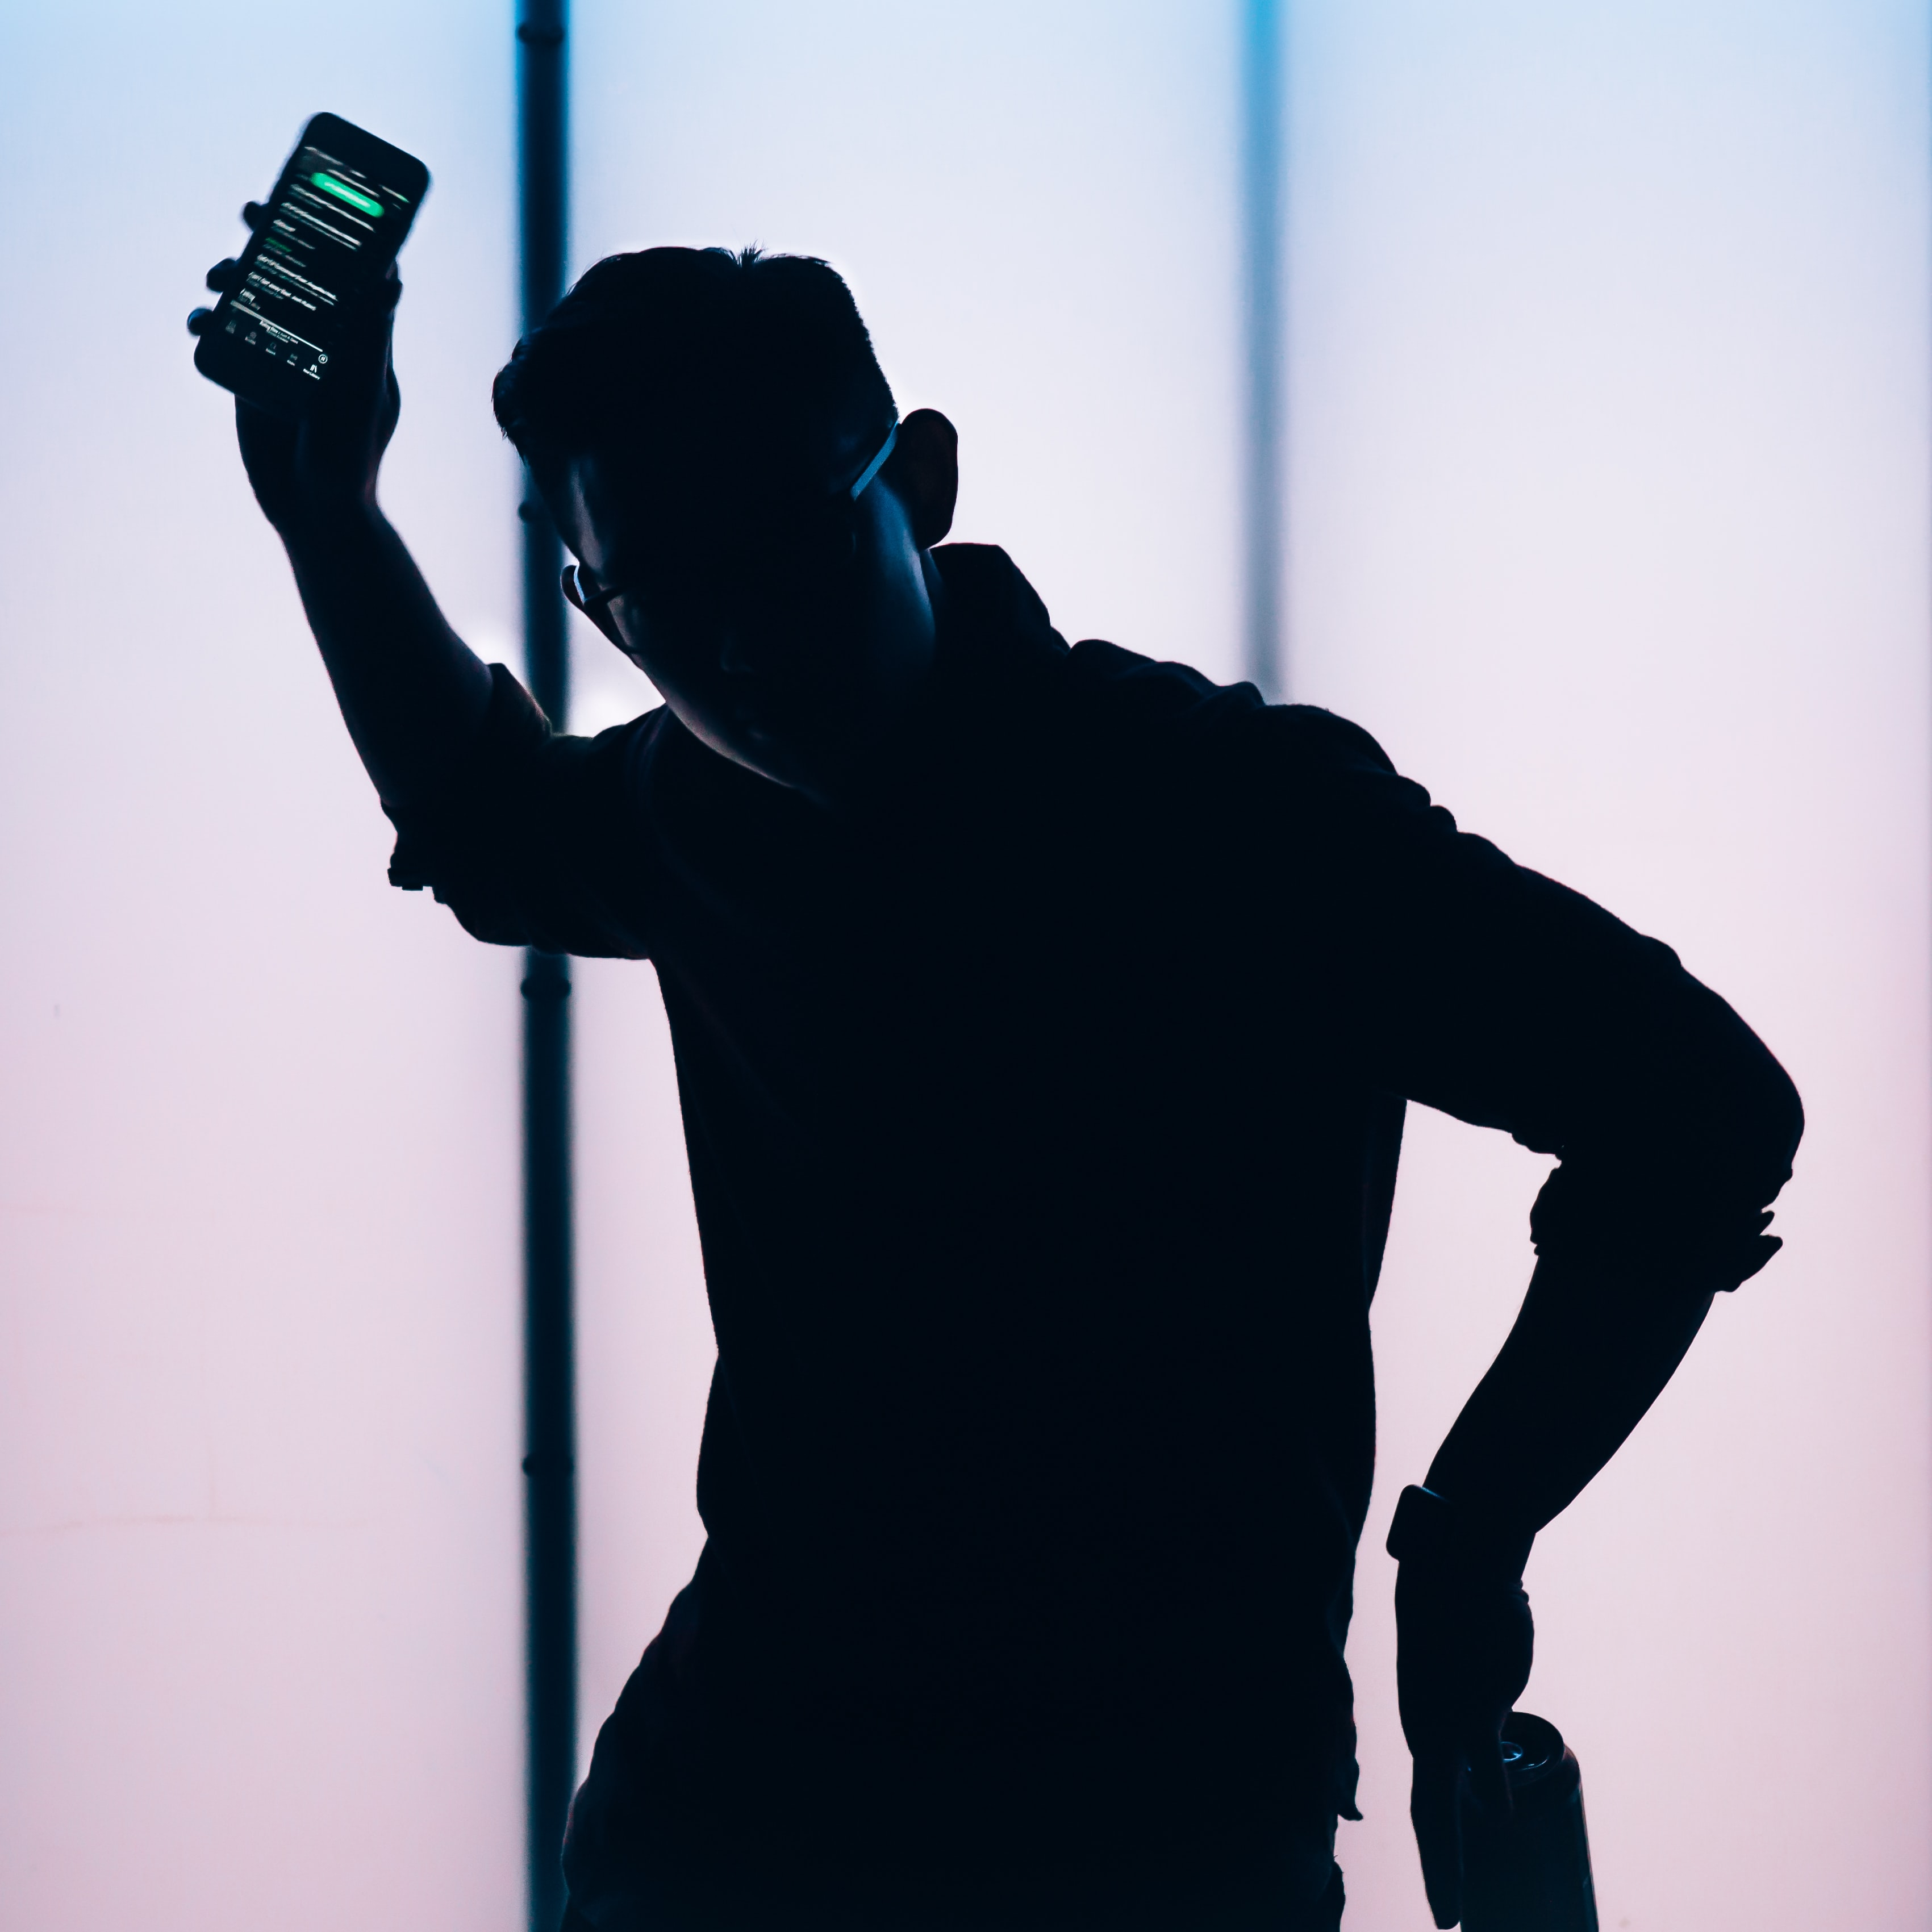 silhouette of man holding smartphone